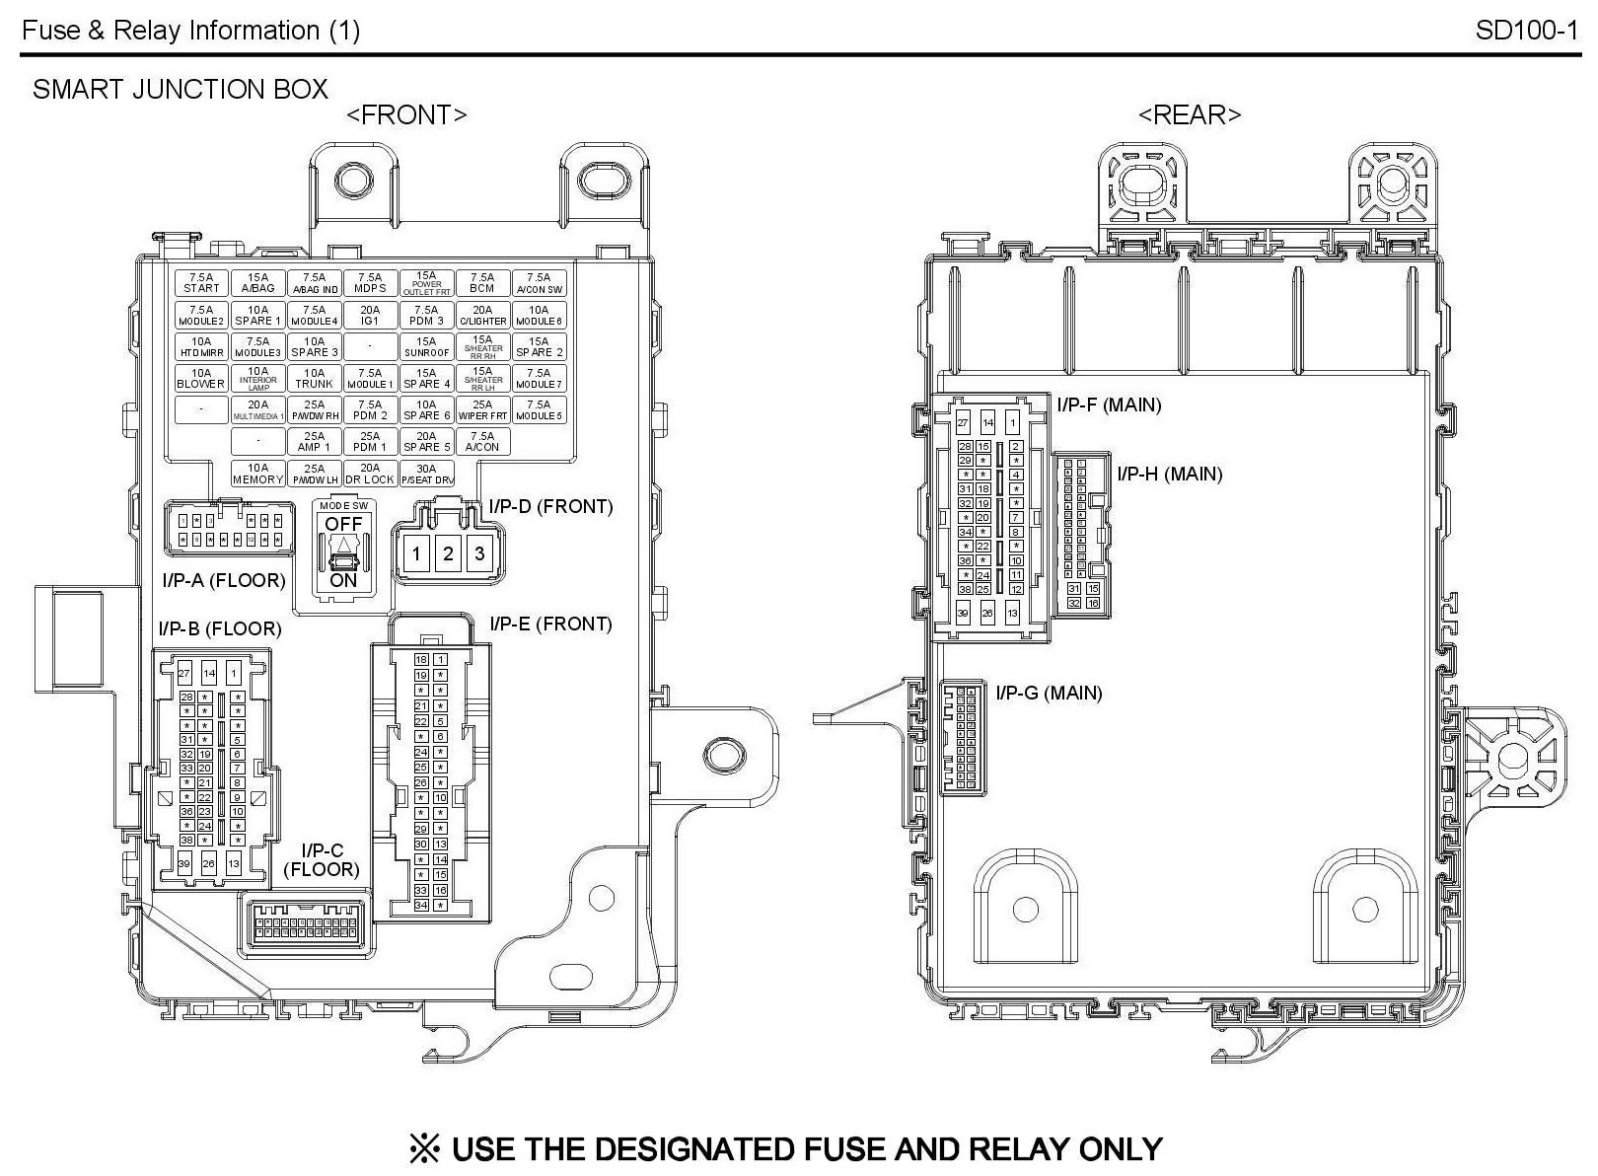 2011 Elantra Fuse Box Wiring Diagram Site